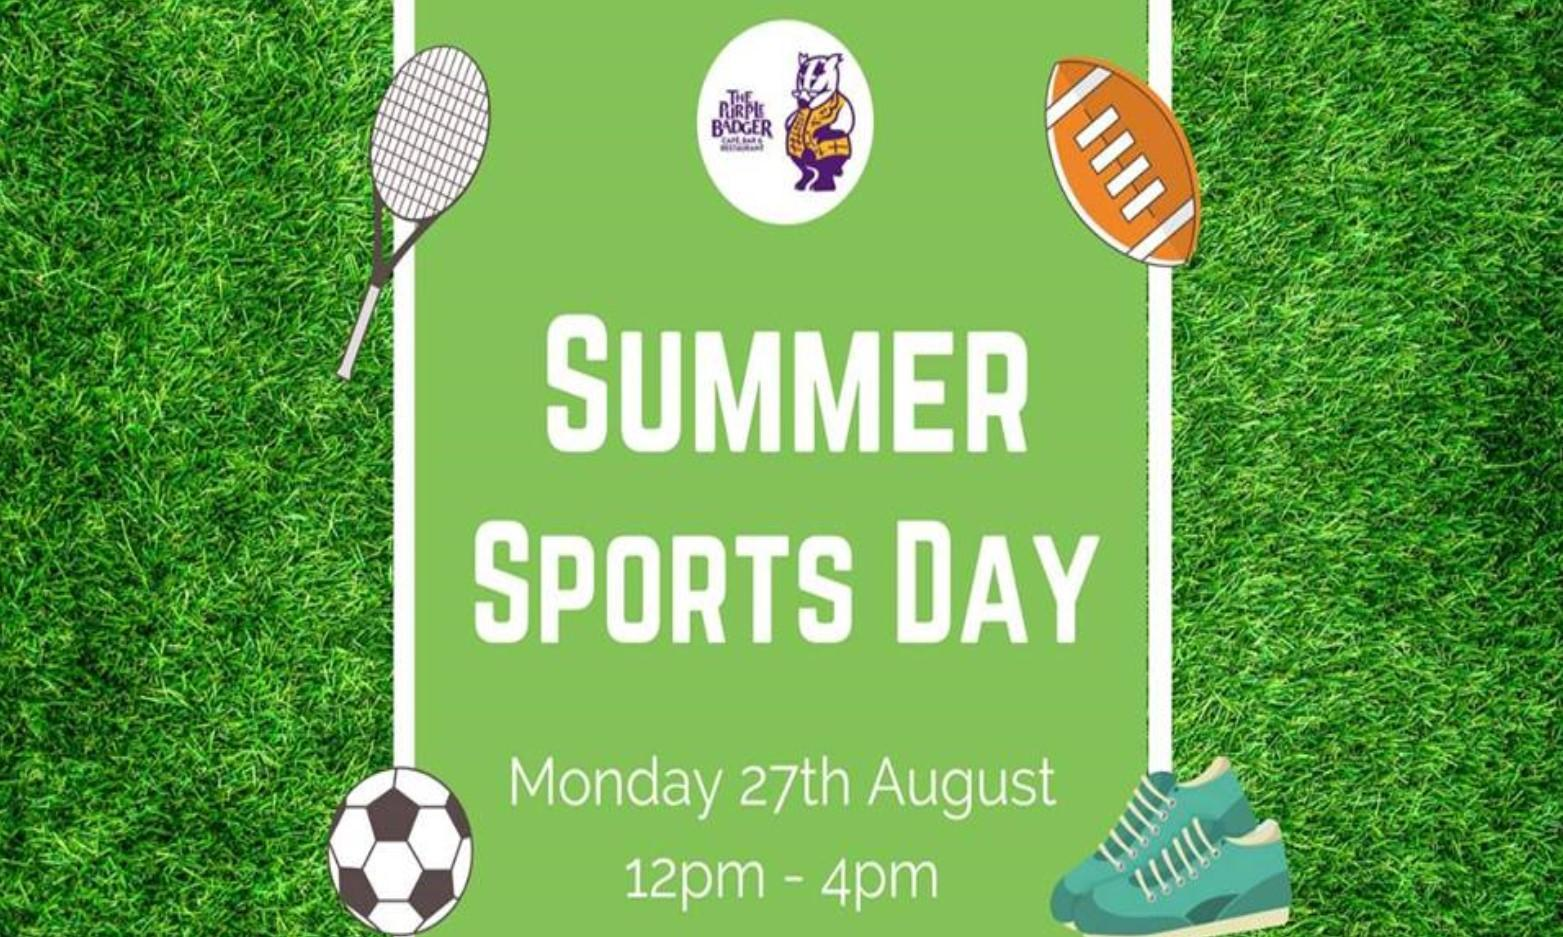 Summer Sports Day at Purple Badger